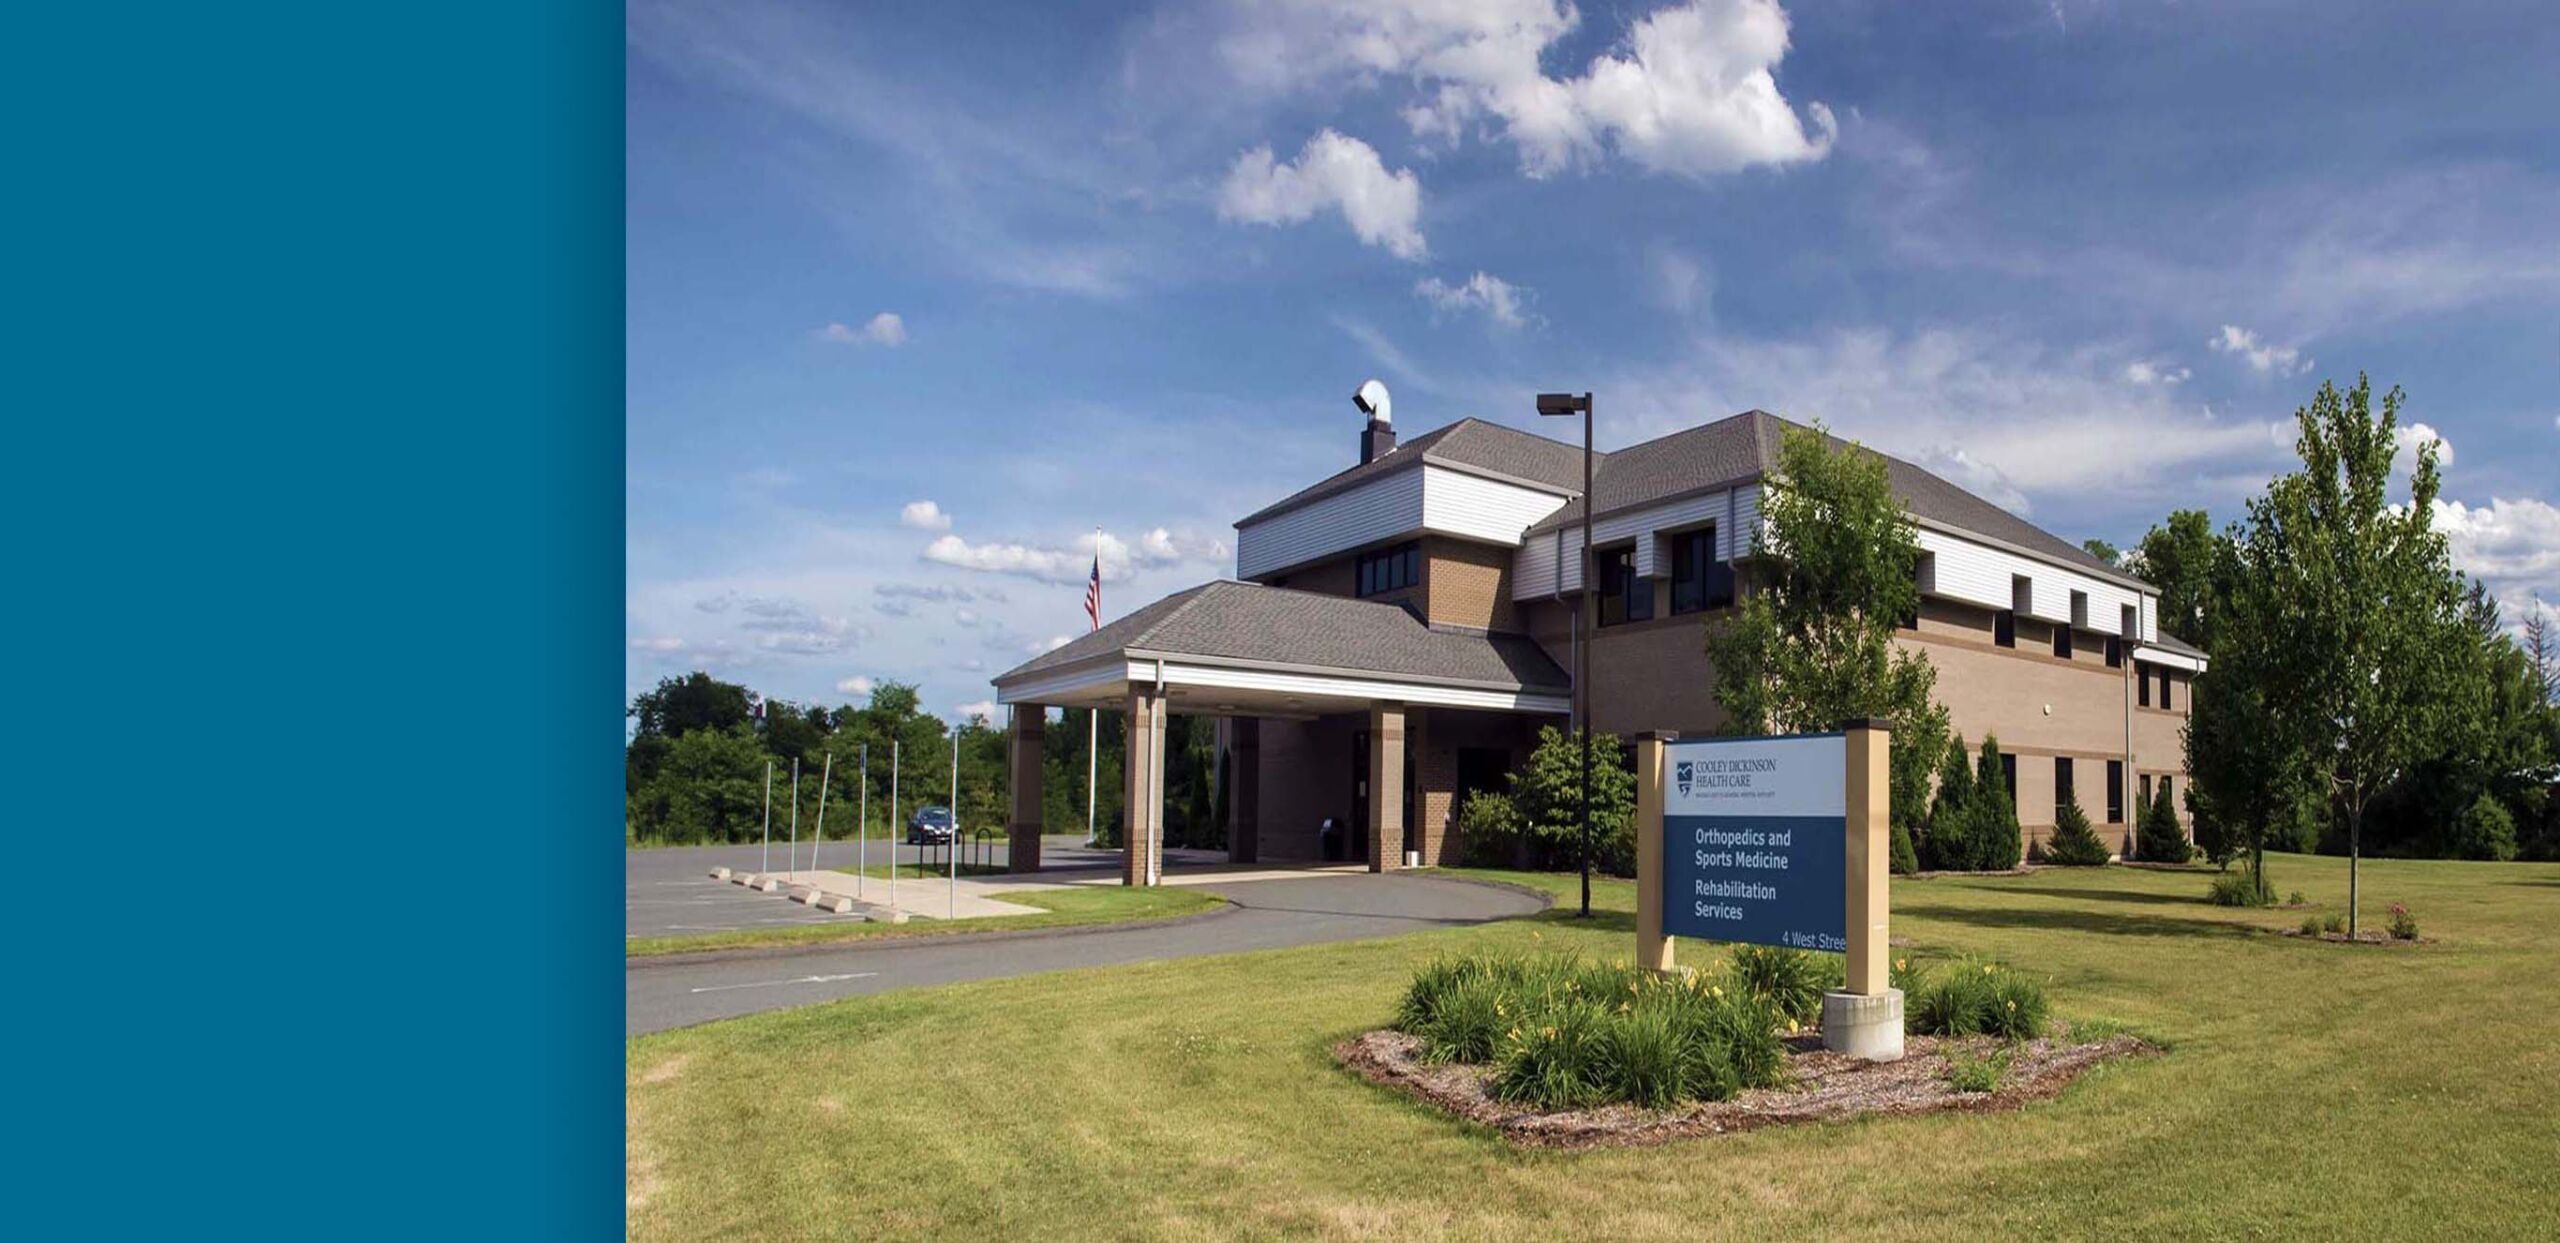 Cooley Dickinson Medical Group West Hatfield Location